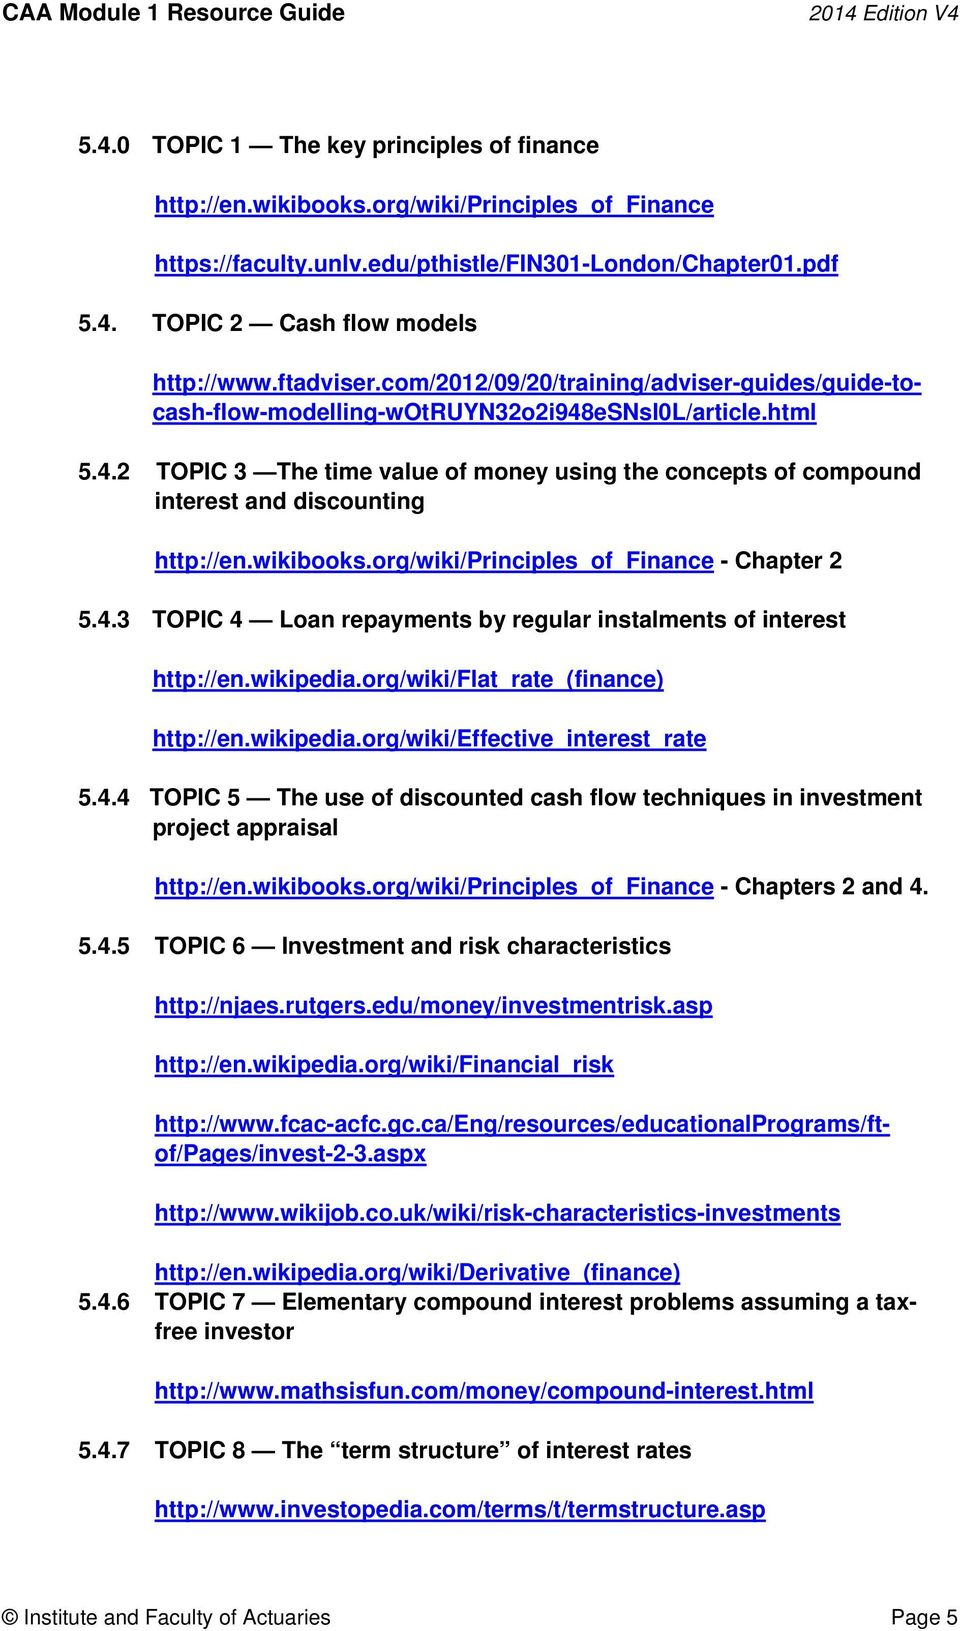 4.4 TOPIC 5 The use of discounted cash flow techniques in investment project appraisal http://en.wikibooks.org/wiki/principles_of_finance - Chapters 2 and 4. 5.4.5 TOPIC 6 Investment and risk characteristics http://njaes.